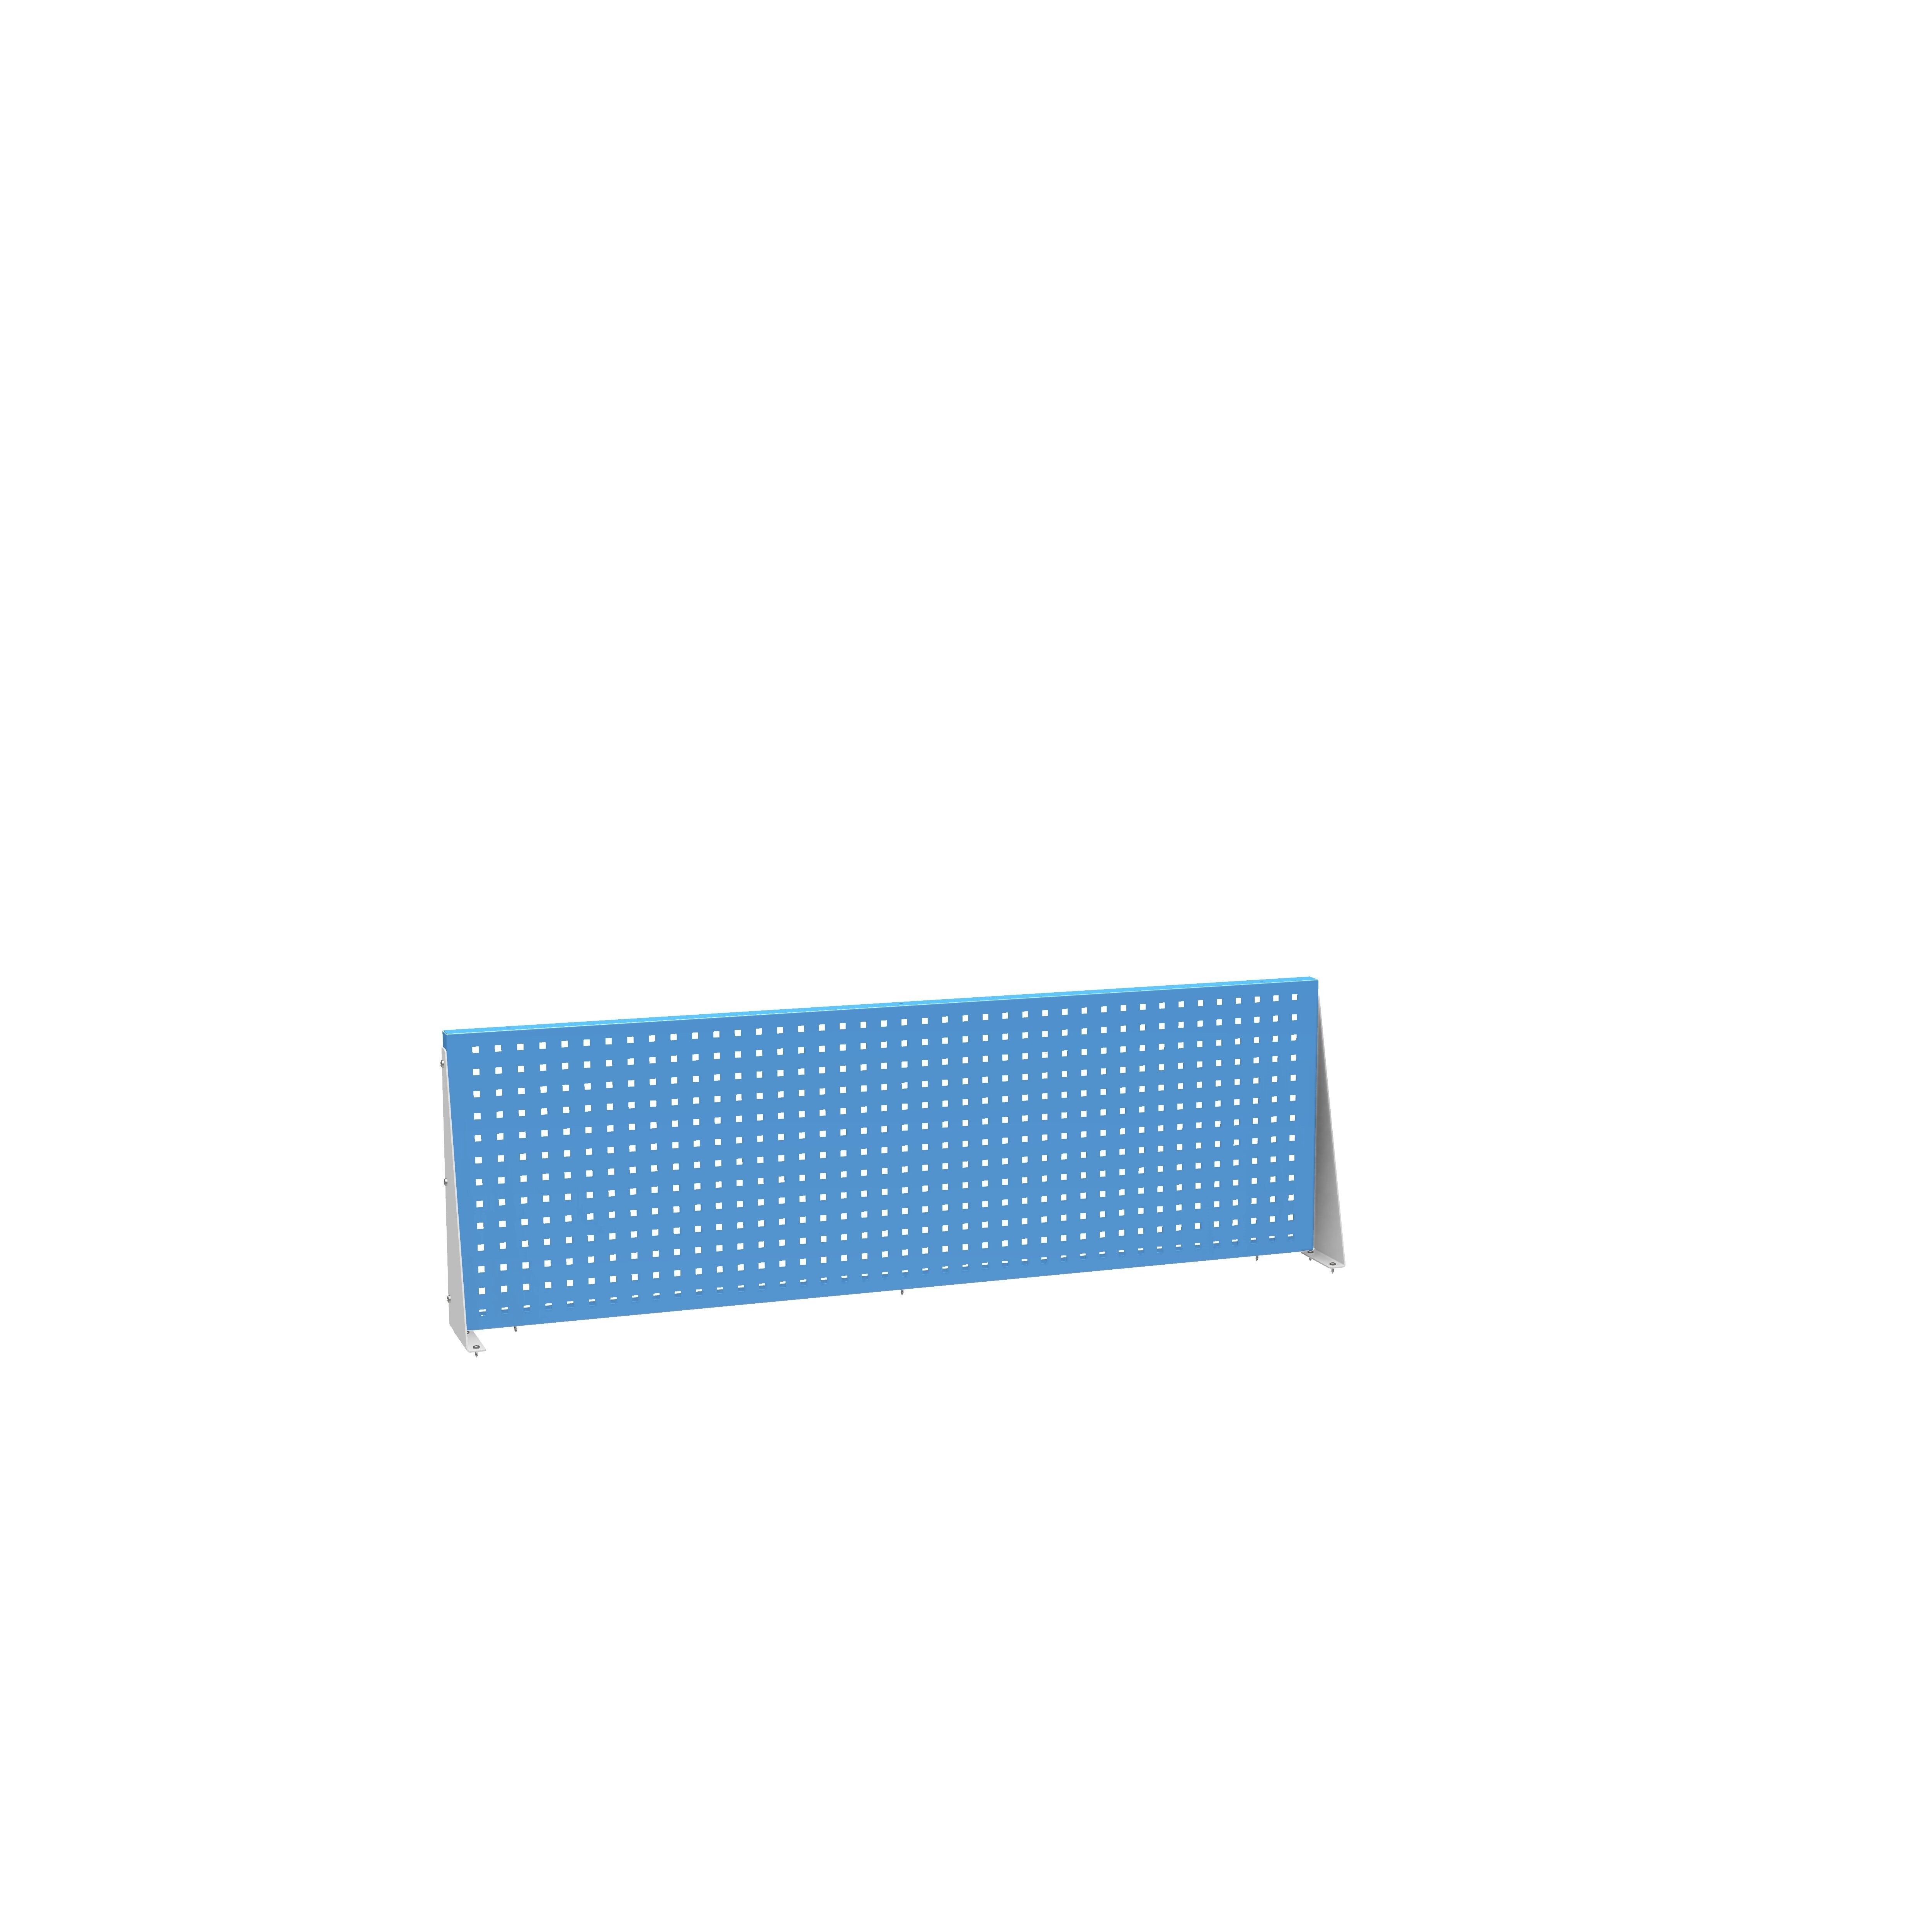 DiKom Perforated Panel VL-150-E1